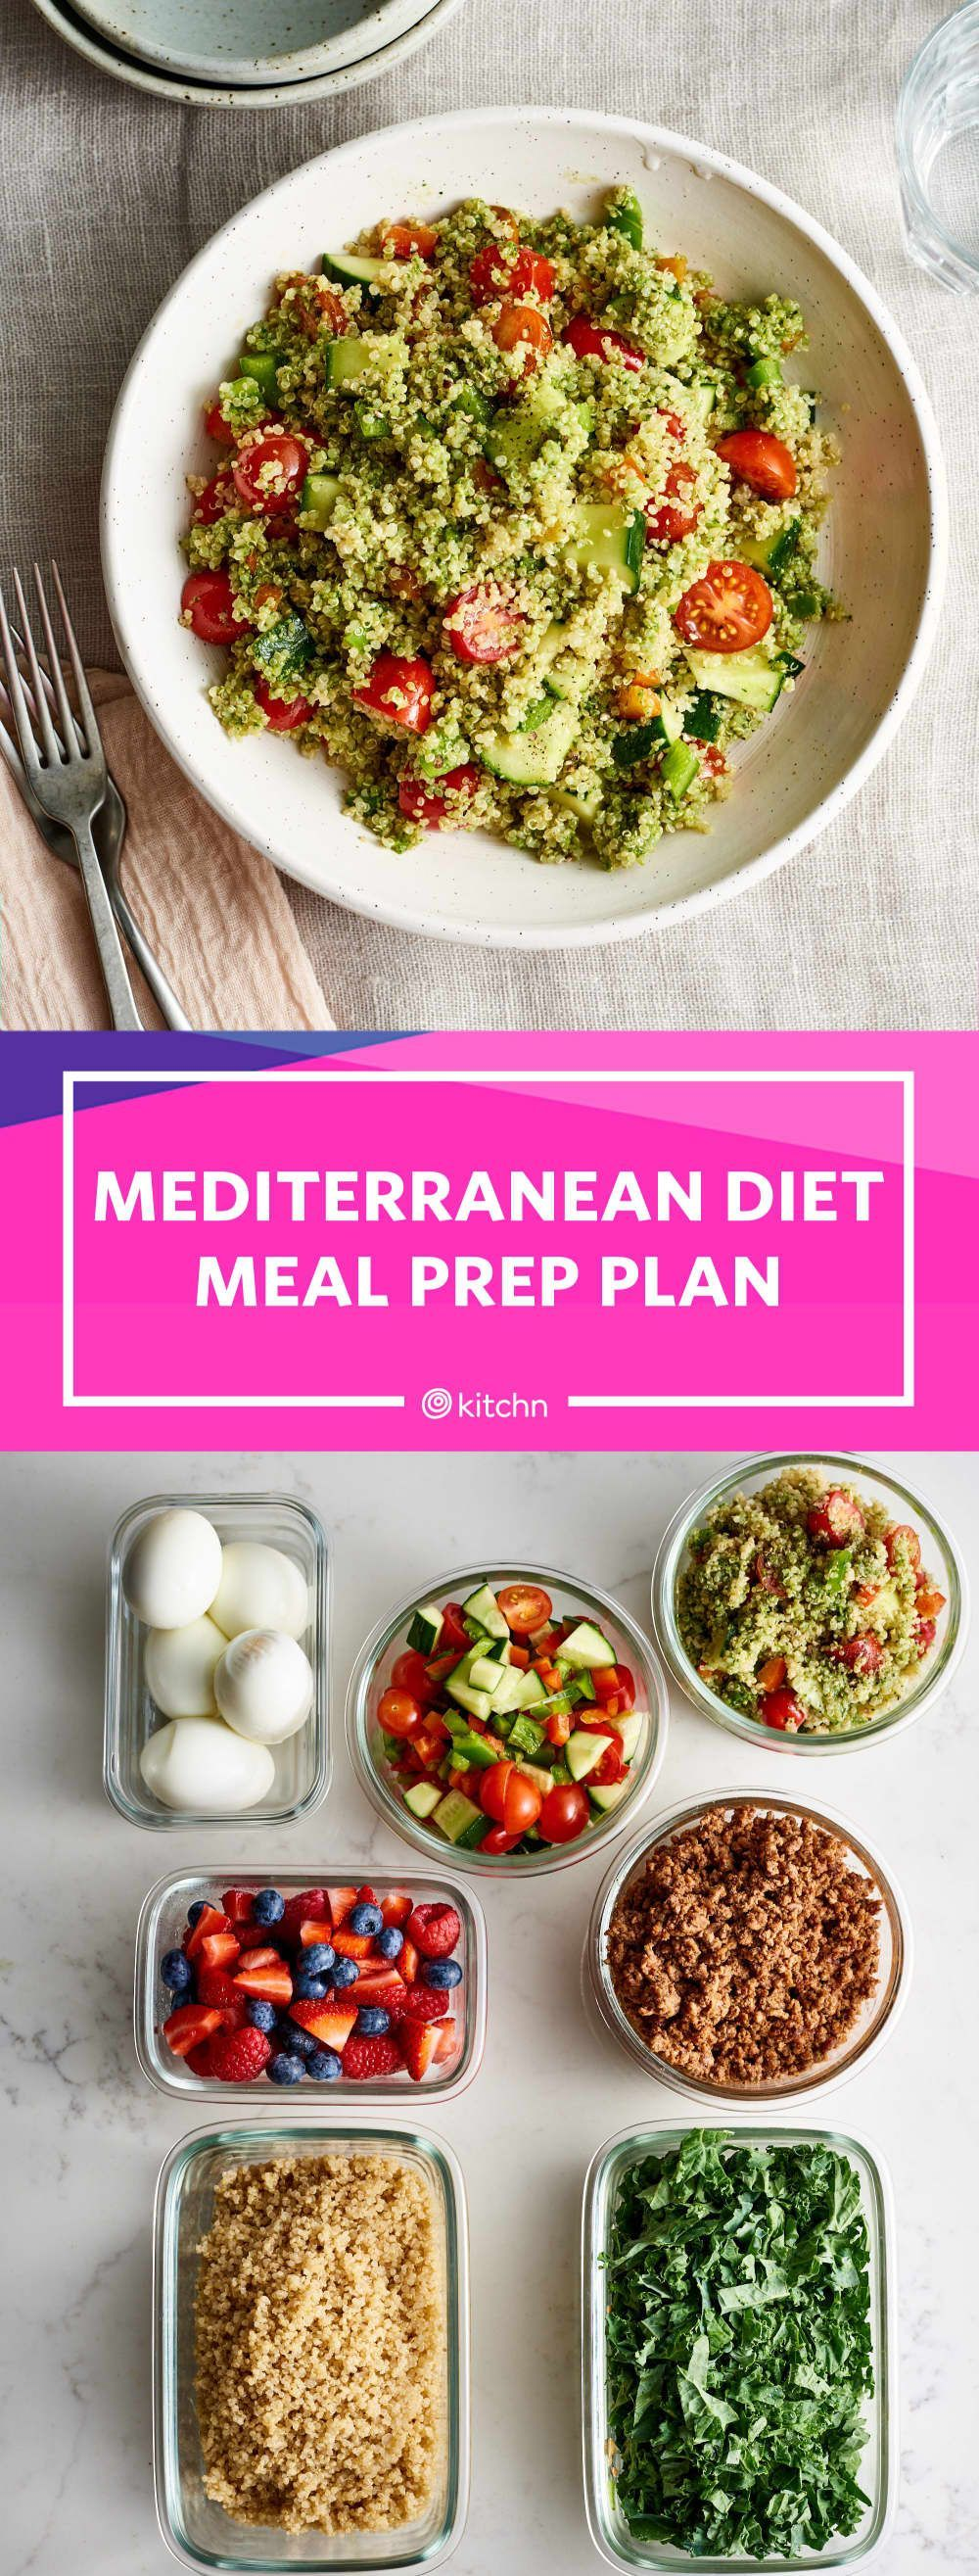 Meal Prep Plan: How I Prep a Week of Easy Mediterranean Diet Meals in Just 2 Hours - #2 #a. #diet #easy #Hours #how #i #in #just #meal #Meals #Mediterranean #of #Plan #Prep: #week